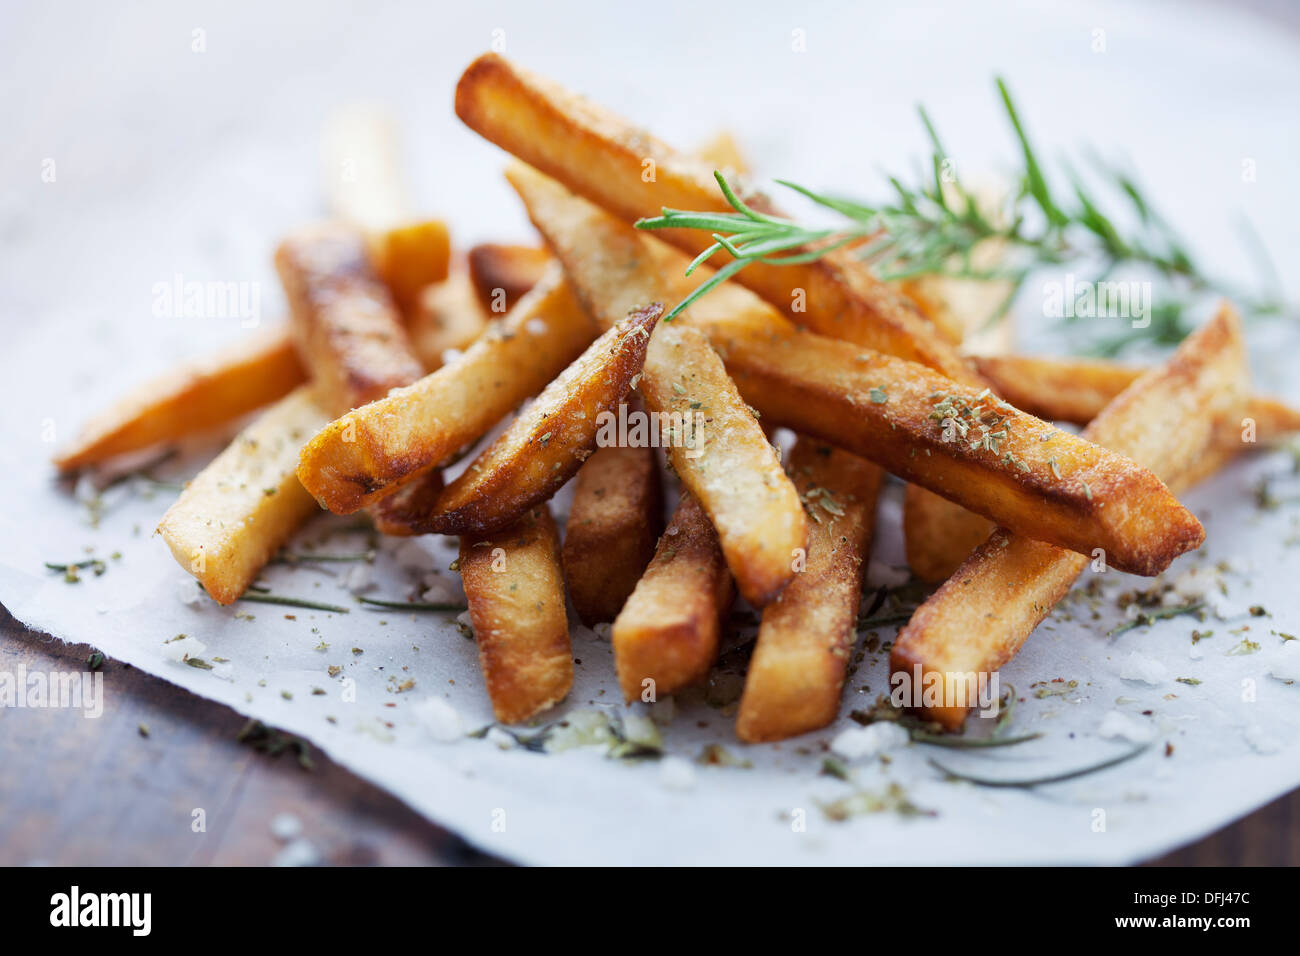 potato chips - Stock Image